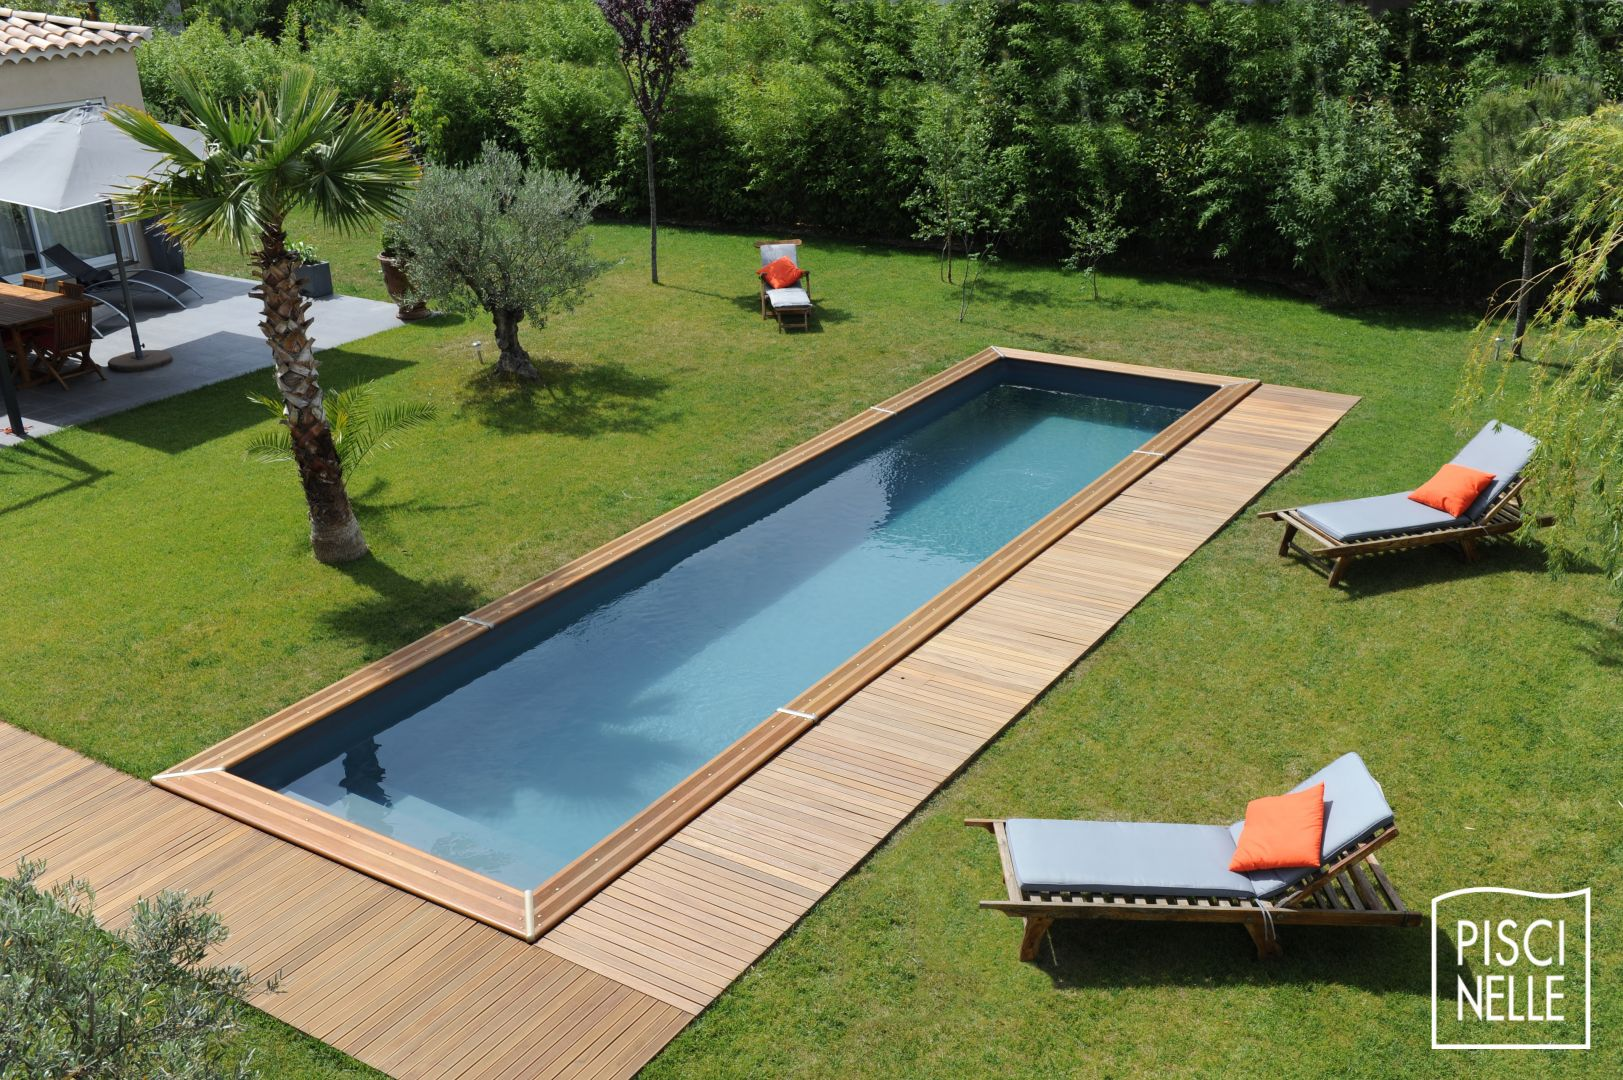 Piscine enterr e les piscines enterr es en kit par for Piscine gonflable 2m